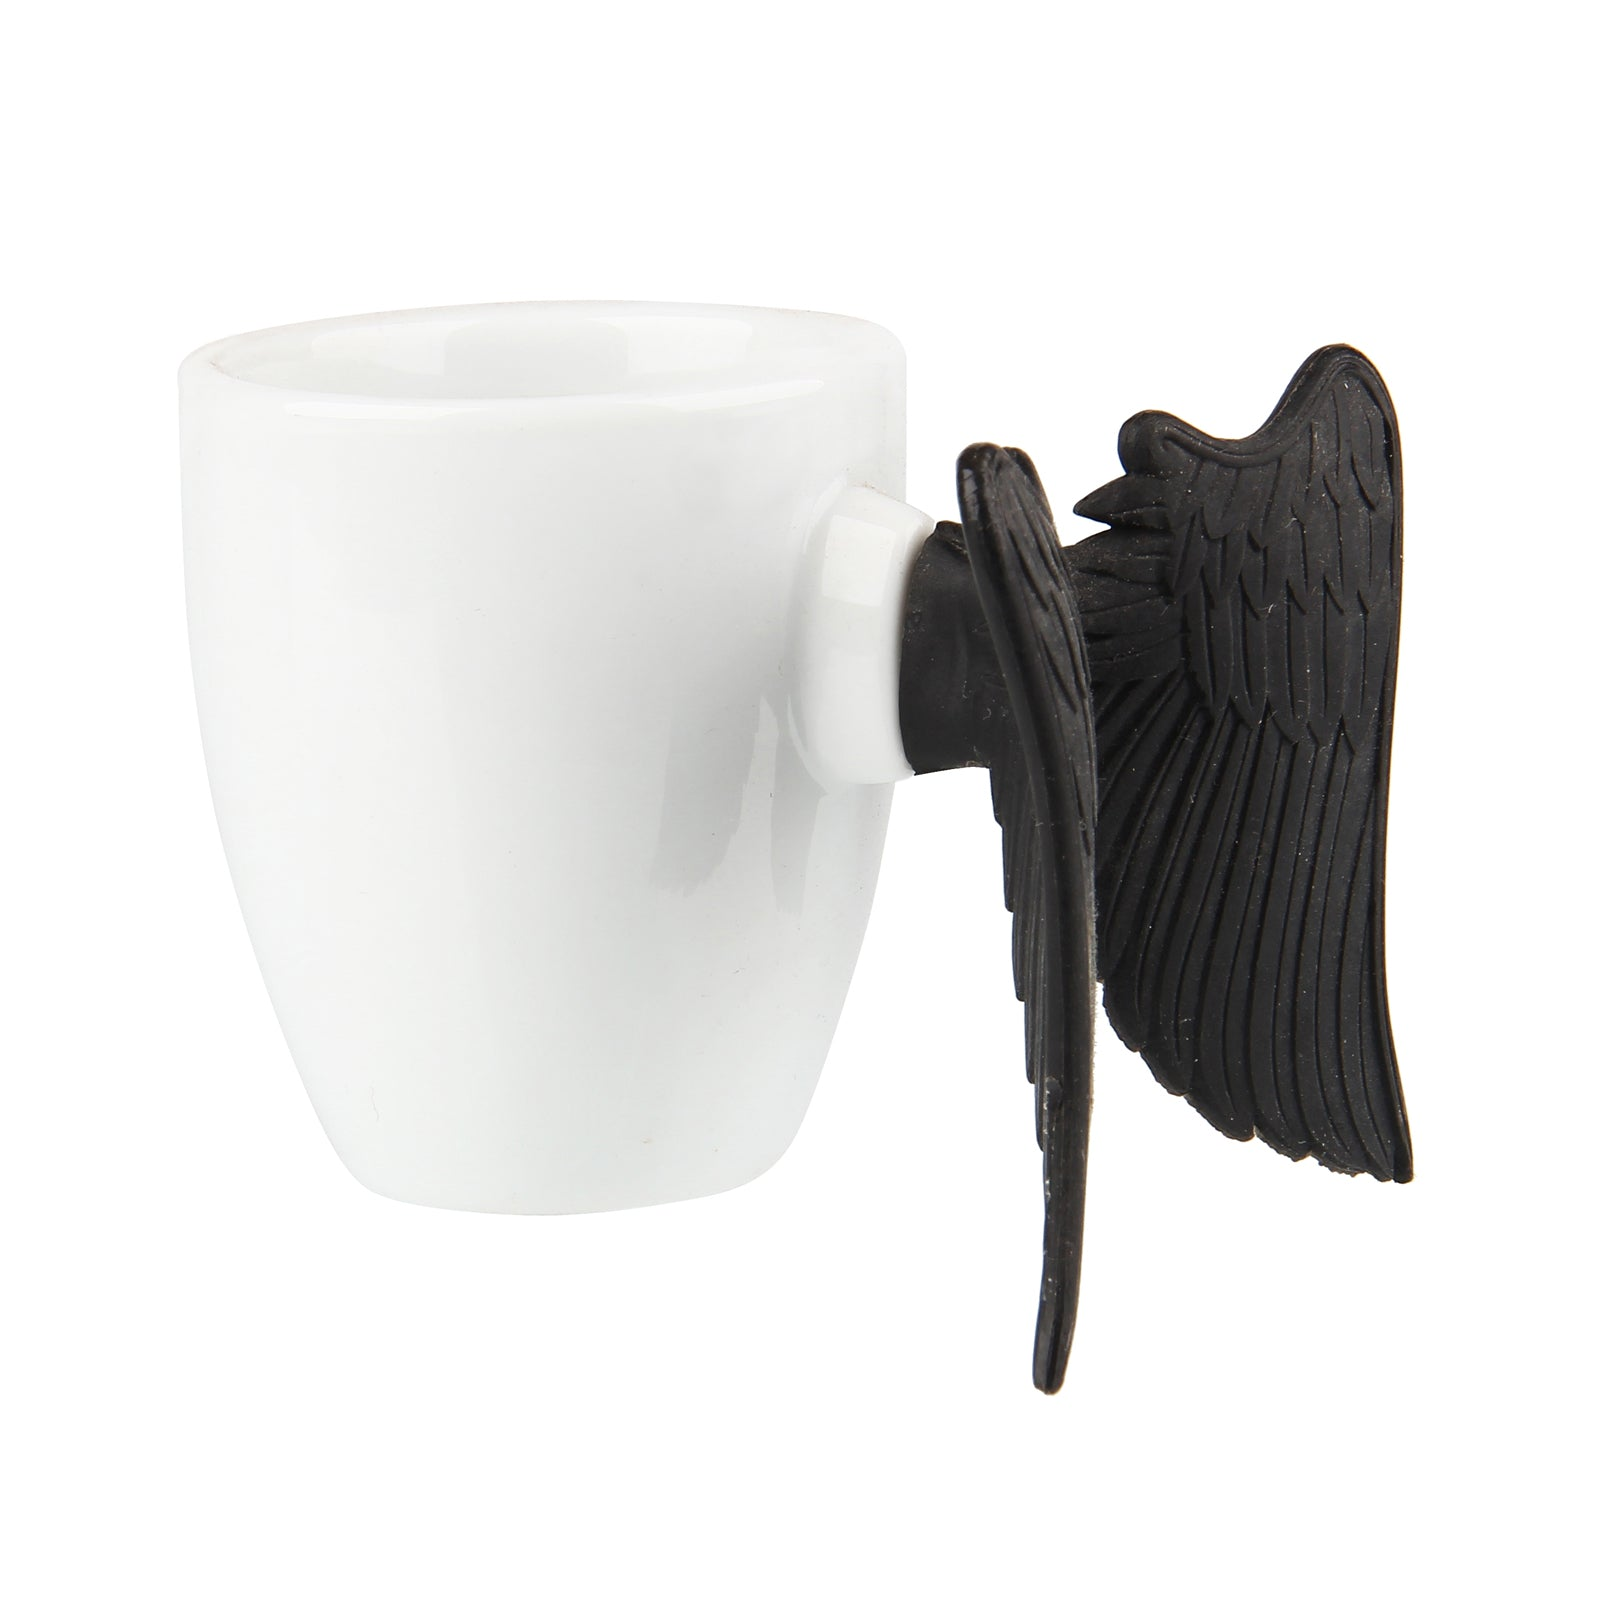 Inspirational Angel Cup - Time To Shine - Black Wings